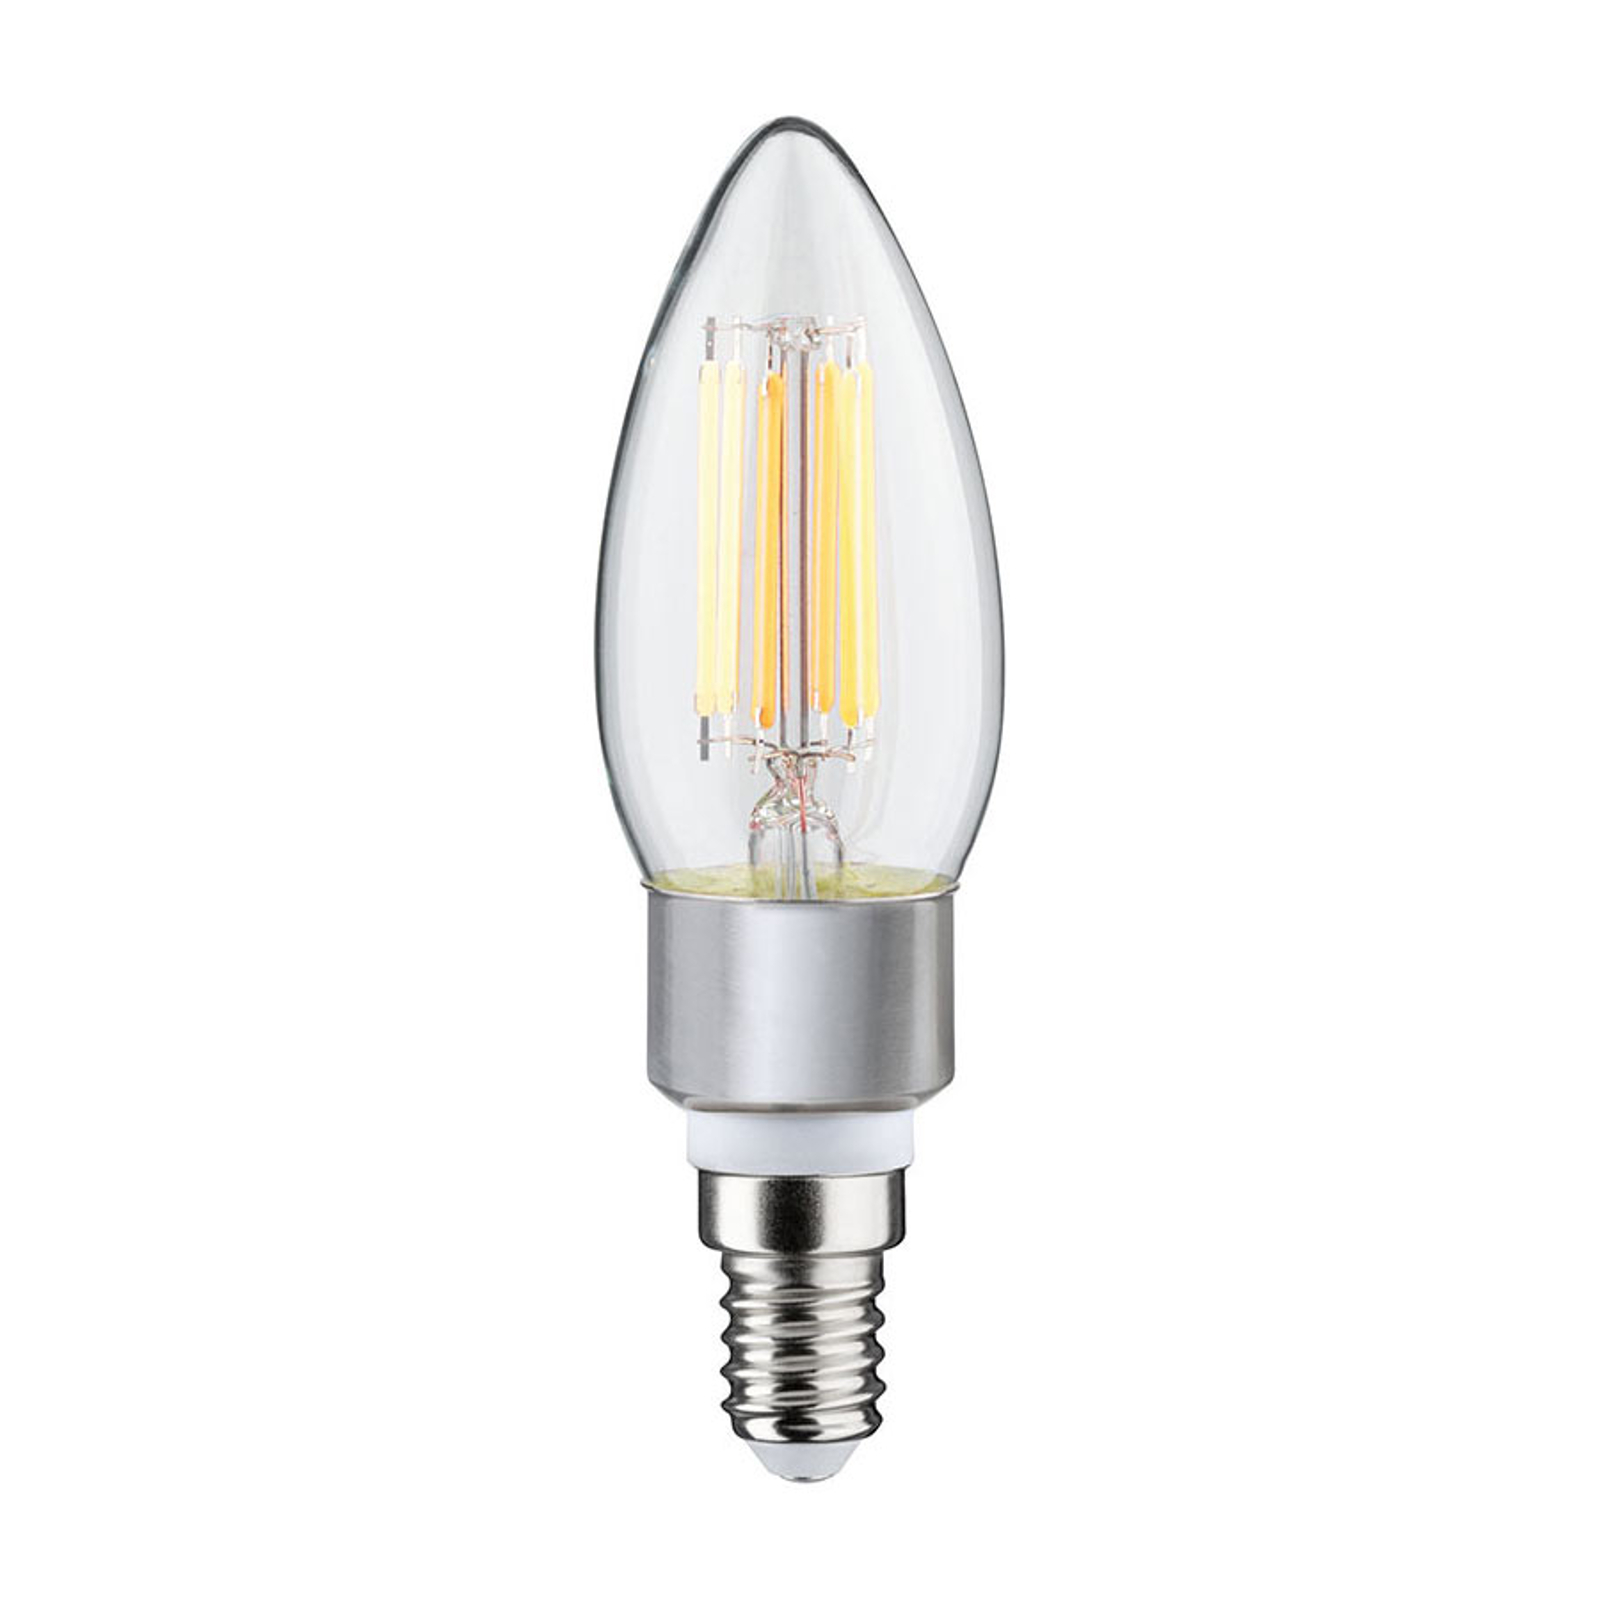 Paulmann ampoule flamme LED E14 5 W dim to warm